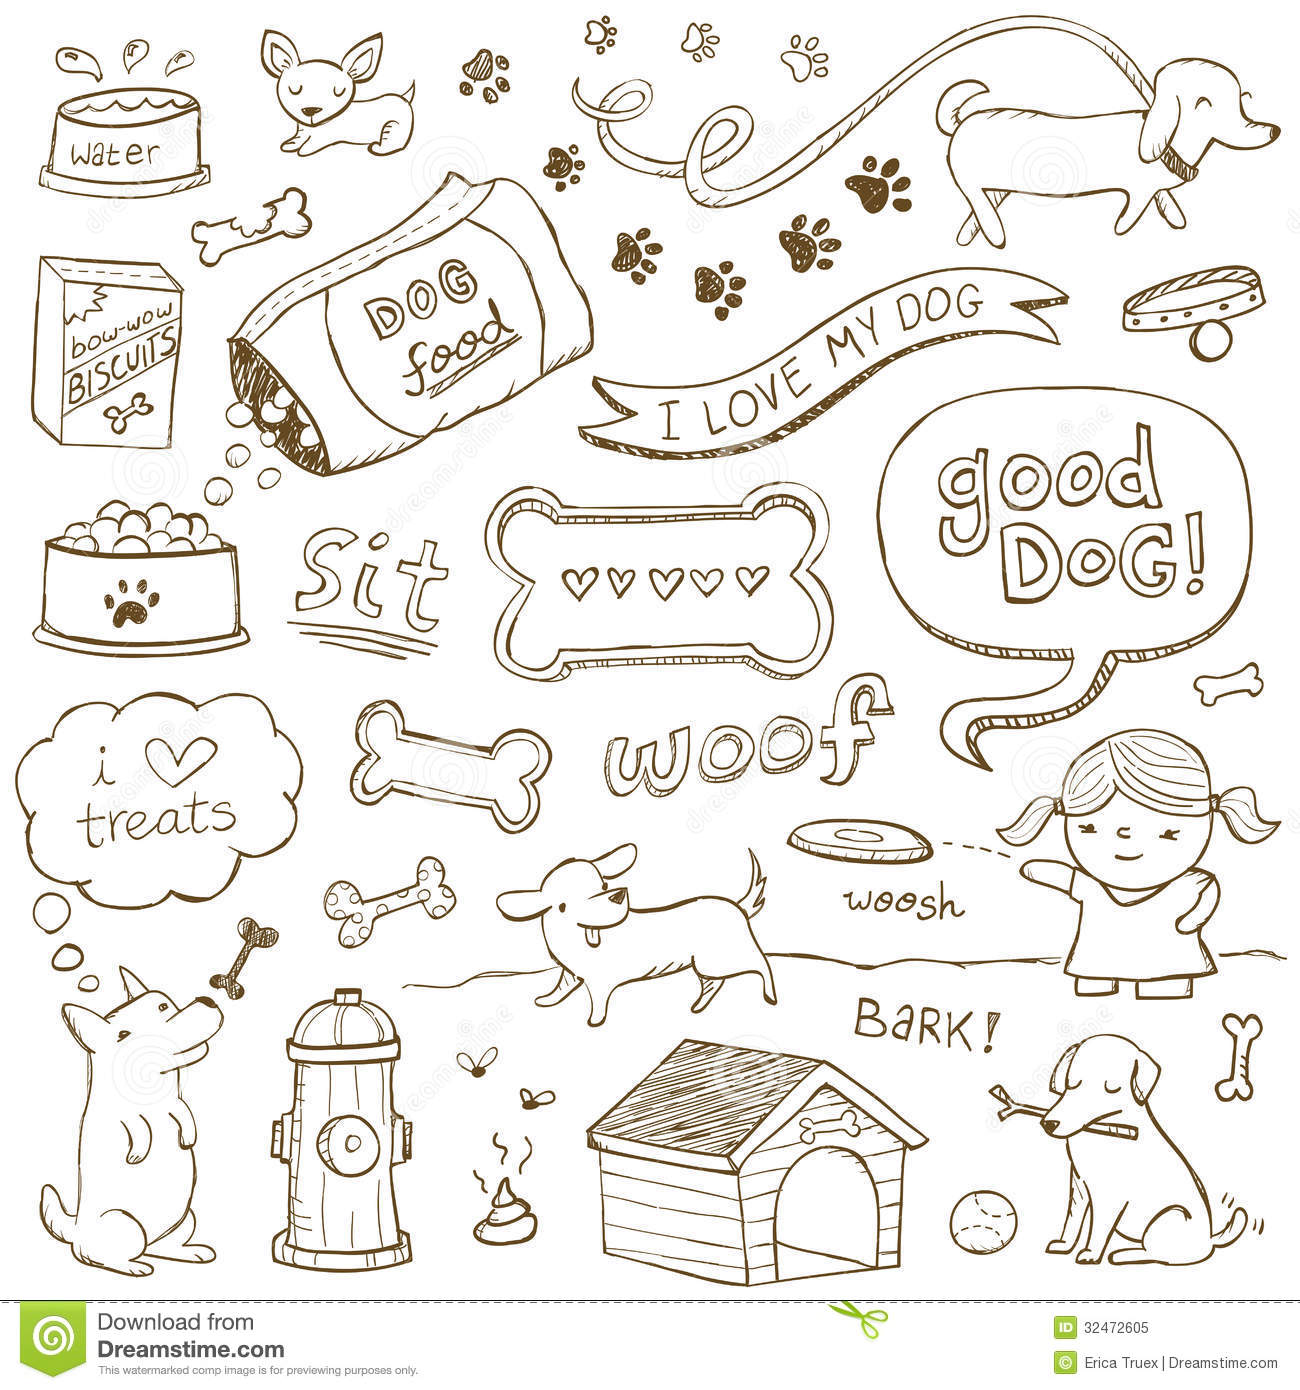 dog doodles cartoon vector cartoondealer com 32472605 Frisbee Clip Art Black and White frisbee clip art free